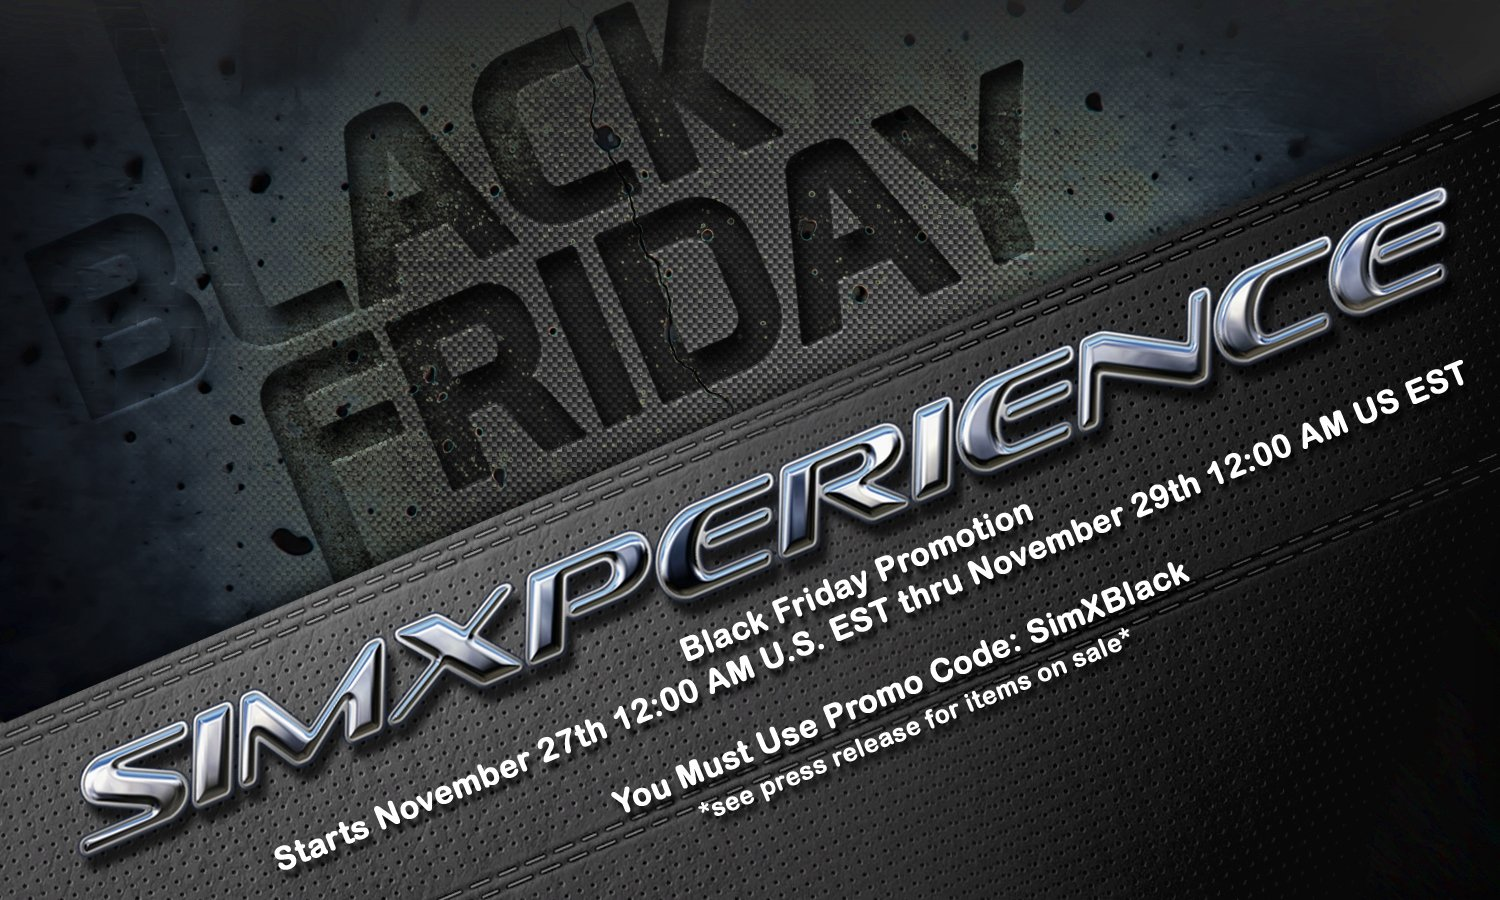 SimXperience Black Friday Promotion